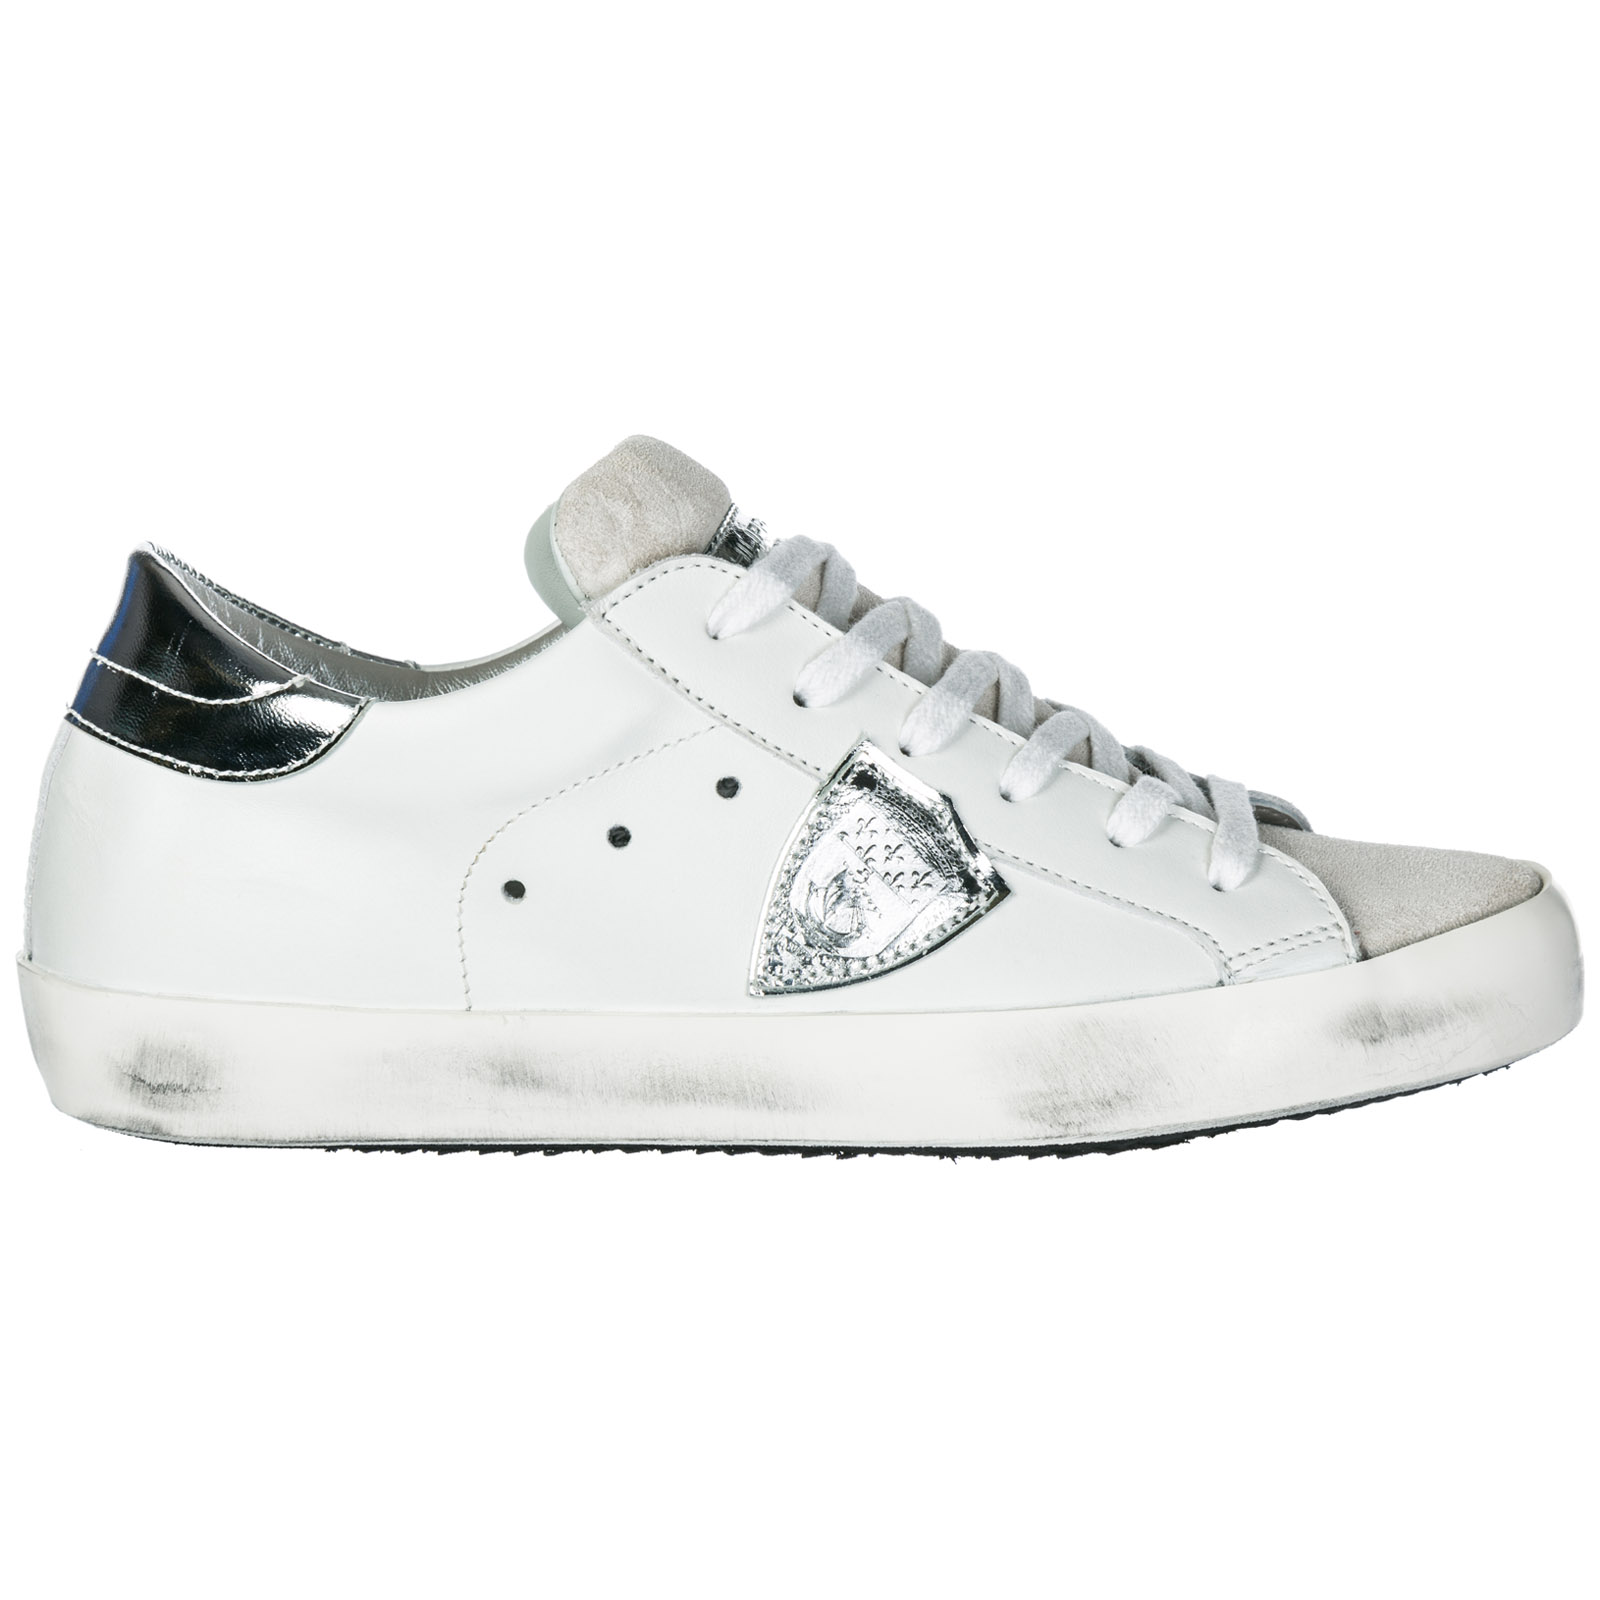 A1unclld1005 Paris Blanc Sneakers Philippe Model Basic Silver dCxBoe